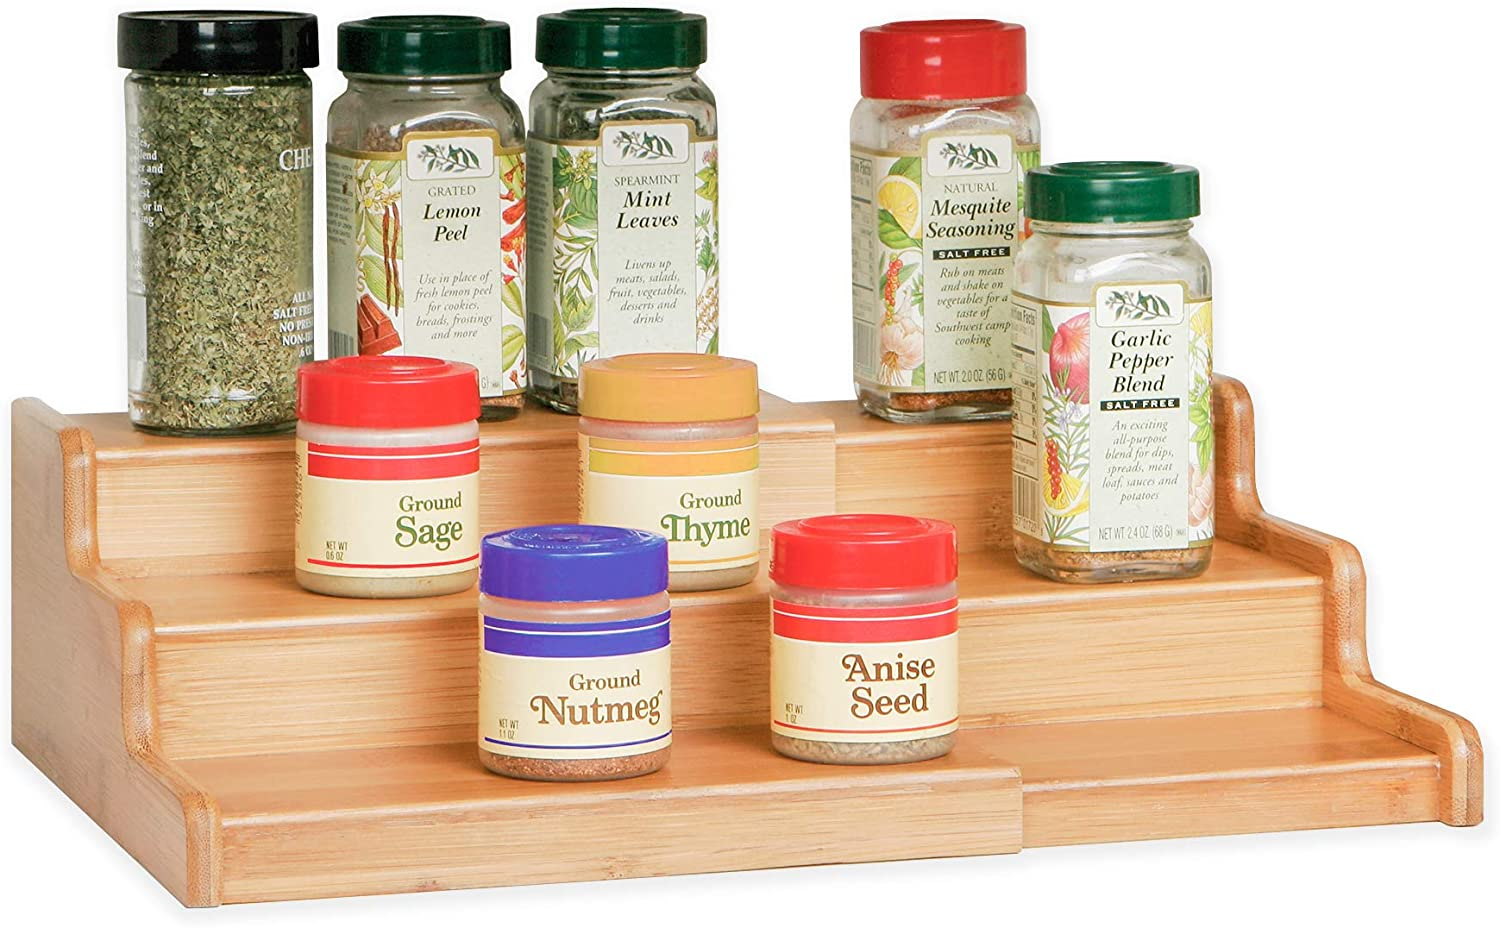 Seville Classics 3-Tier Expandable Bamboo Spice Rack Step Shelf Cabinet Organizer: Home & Kitchen